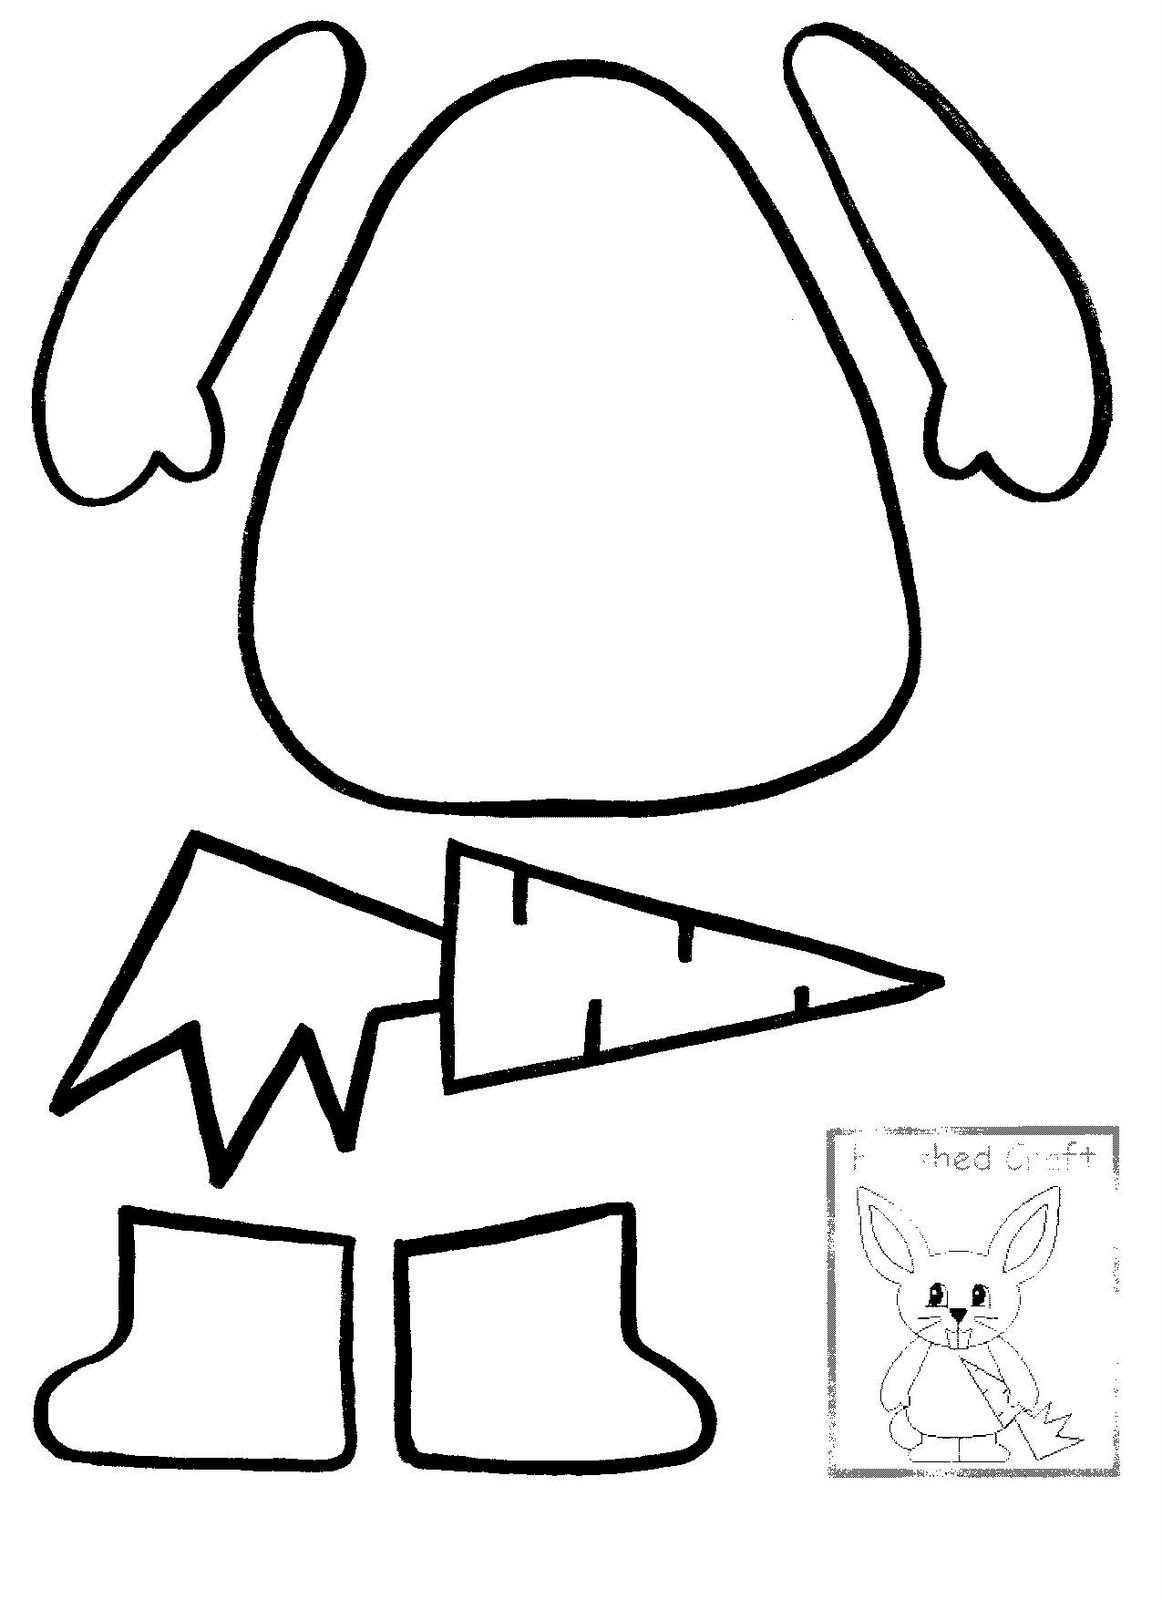 Rabbit Outline | Free Download Best Rabbit Outline On Clipartmag - Free Printable Rabbit Template